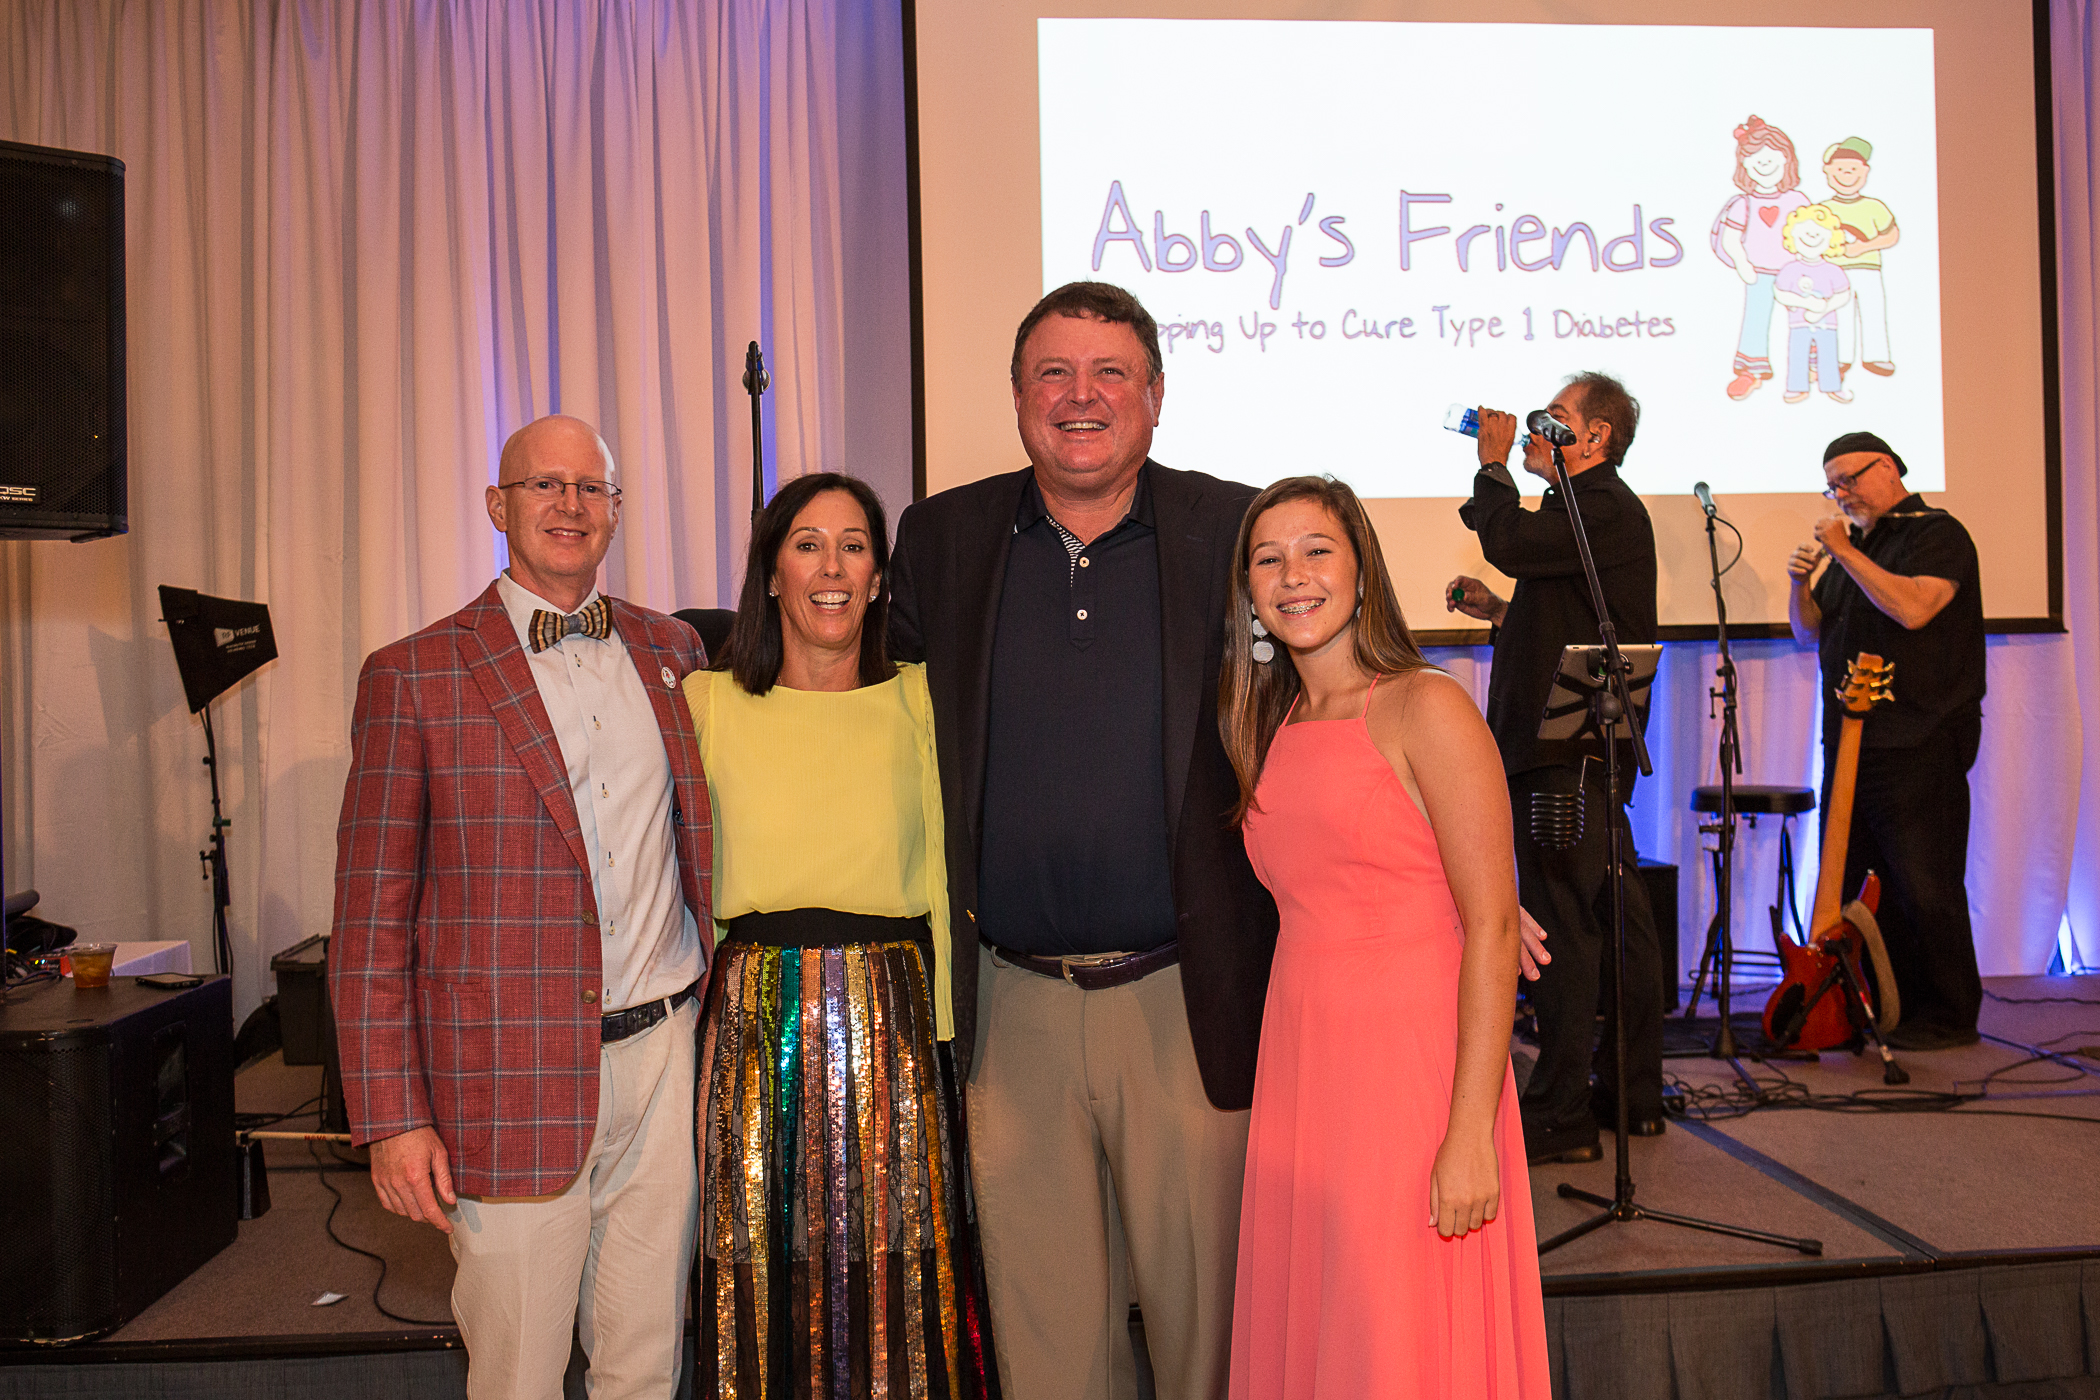 "The entertaining Charlie Rymer from The Golf Channel spoke on ""Making An Impact"" in your community and held the attention of the audience with his wit and experience as a pro golfer."